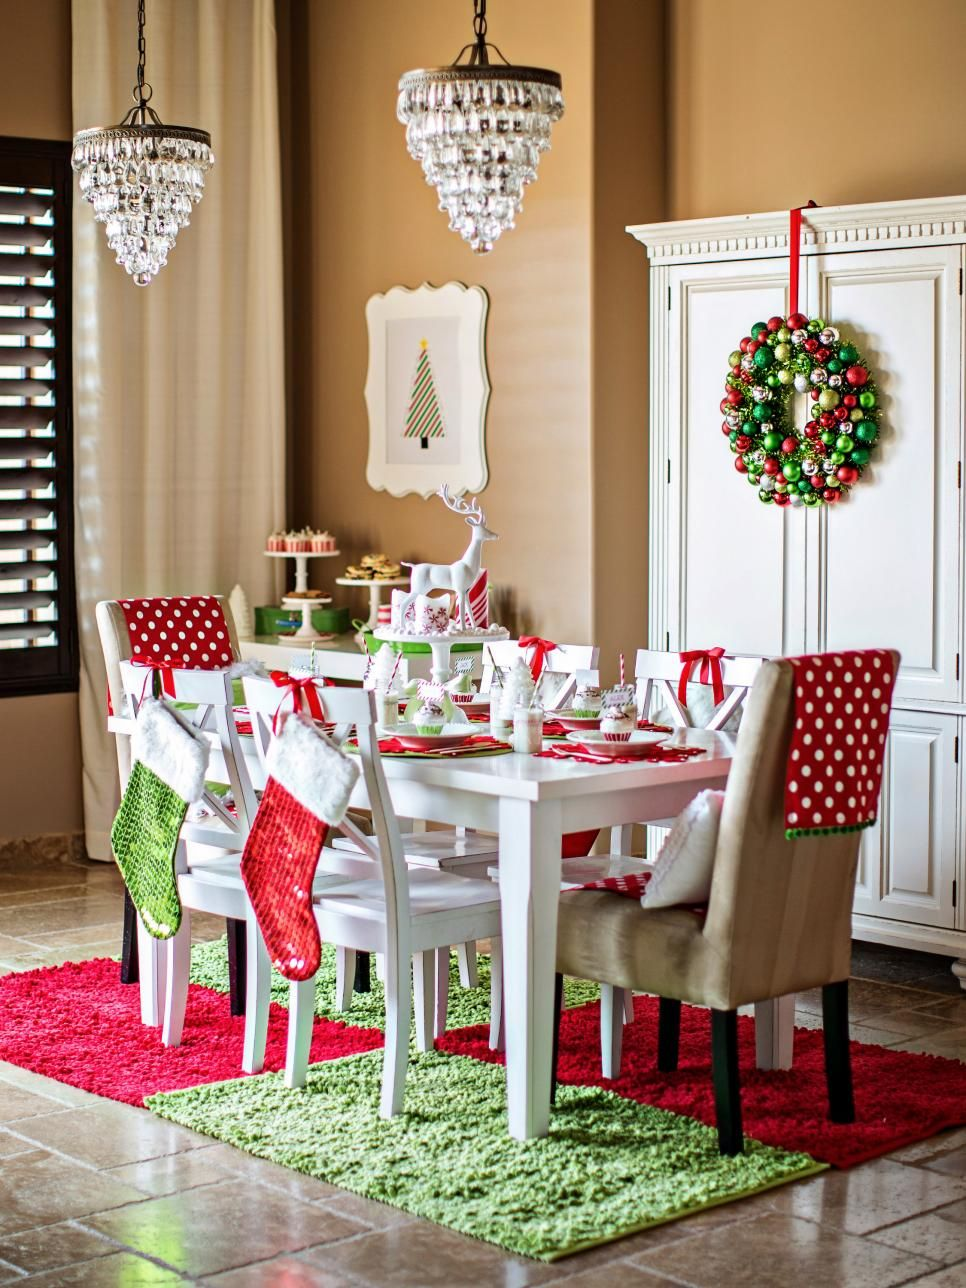 Top 40 Holiday Decoration Ideas For Kitchen | Friendly plastic ... Mat Kitchen Decorating Ideas Html on kitchen baseboard ideas, kitchen flooring ideas, kitchen pot holder ideas, kitchen rug ideas, kitchen basket ideas, kitchen chair ideas, kitchen floor ideas,